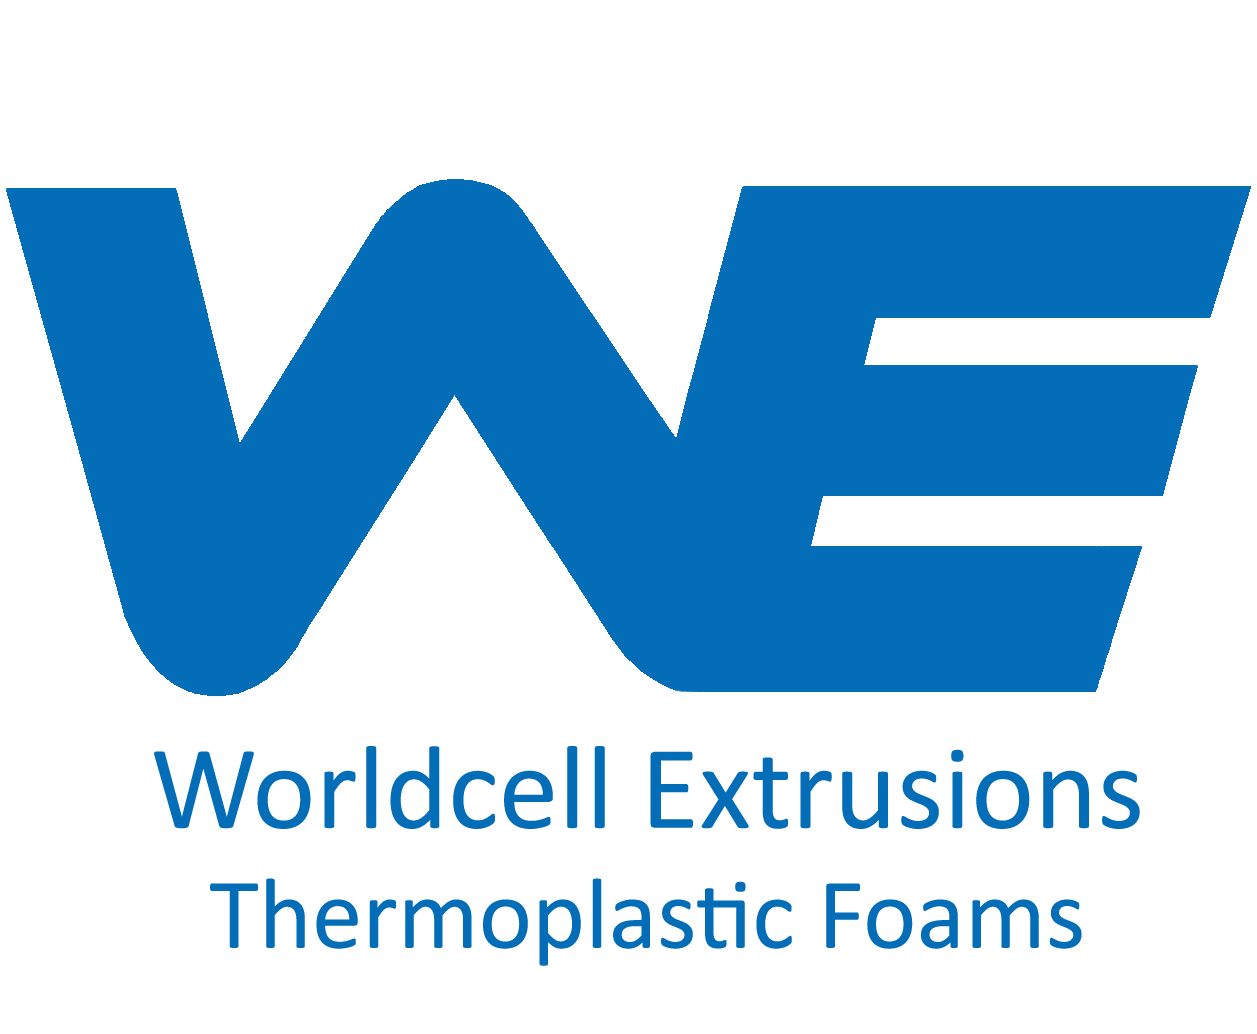 Worldcell® Extrusions